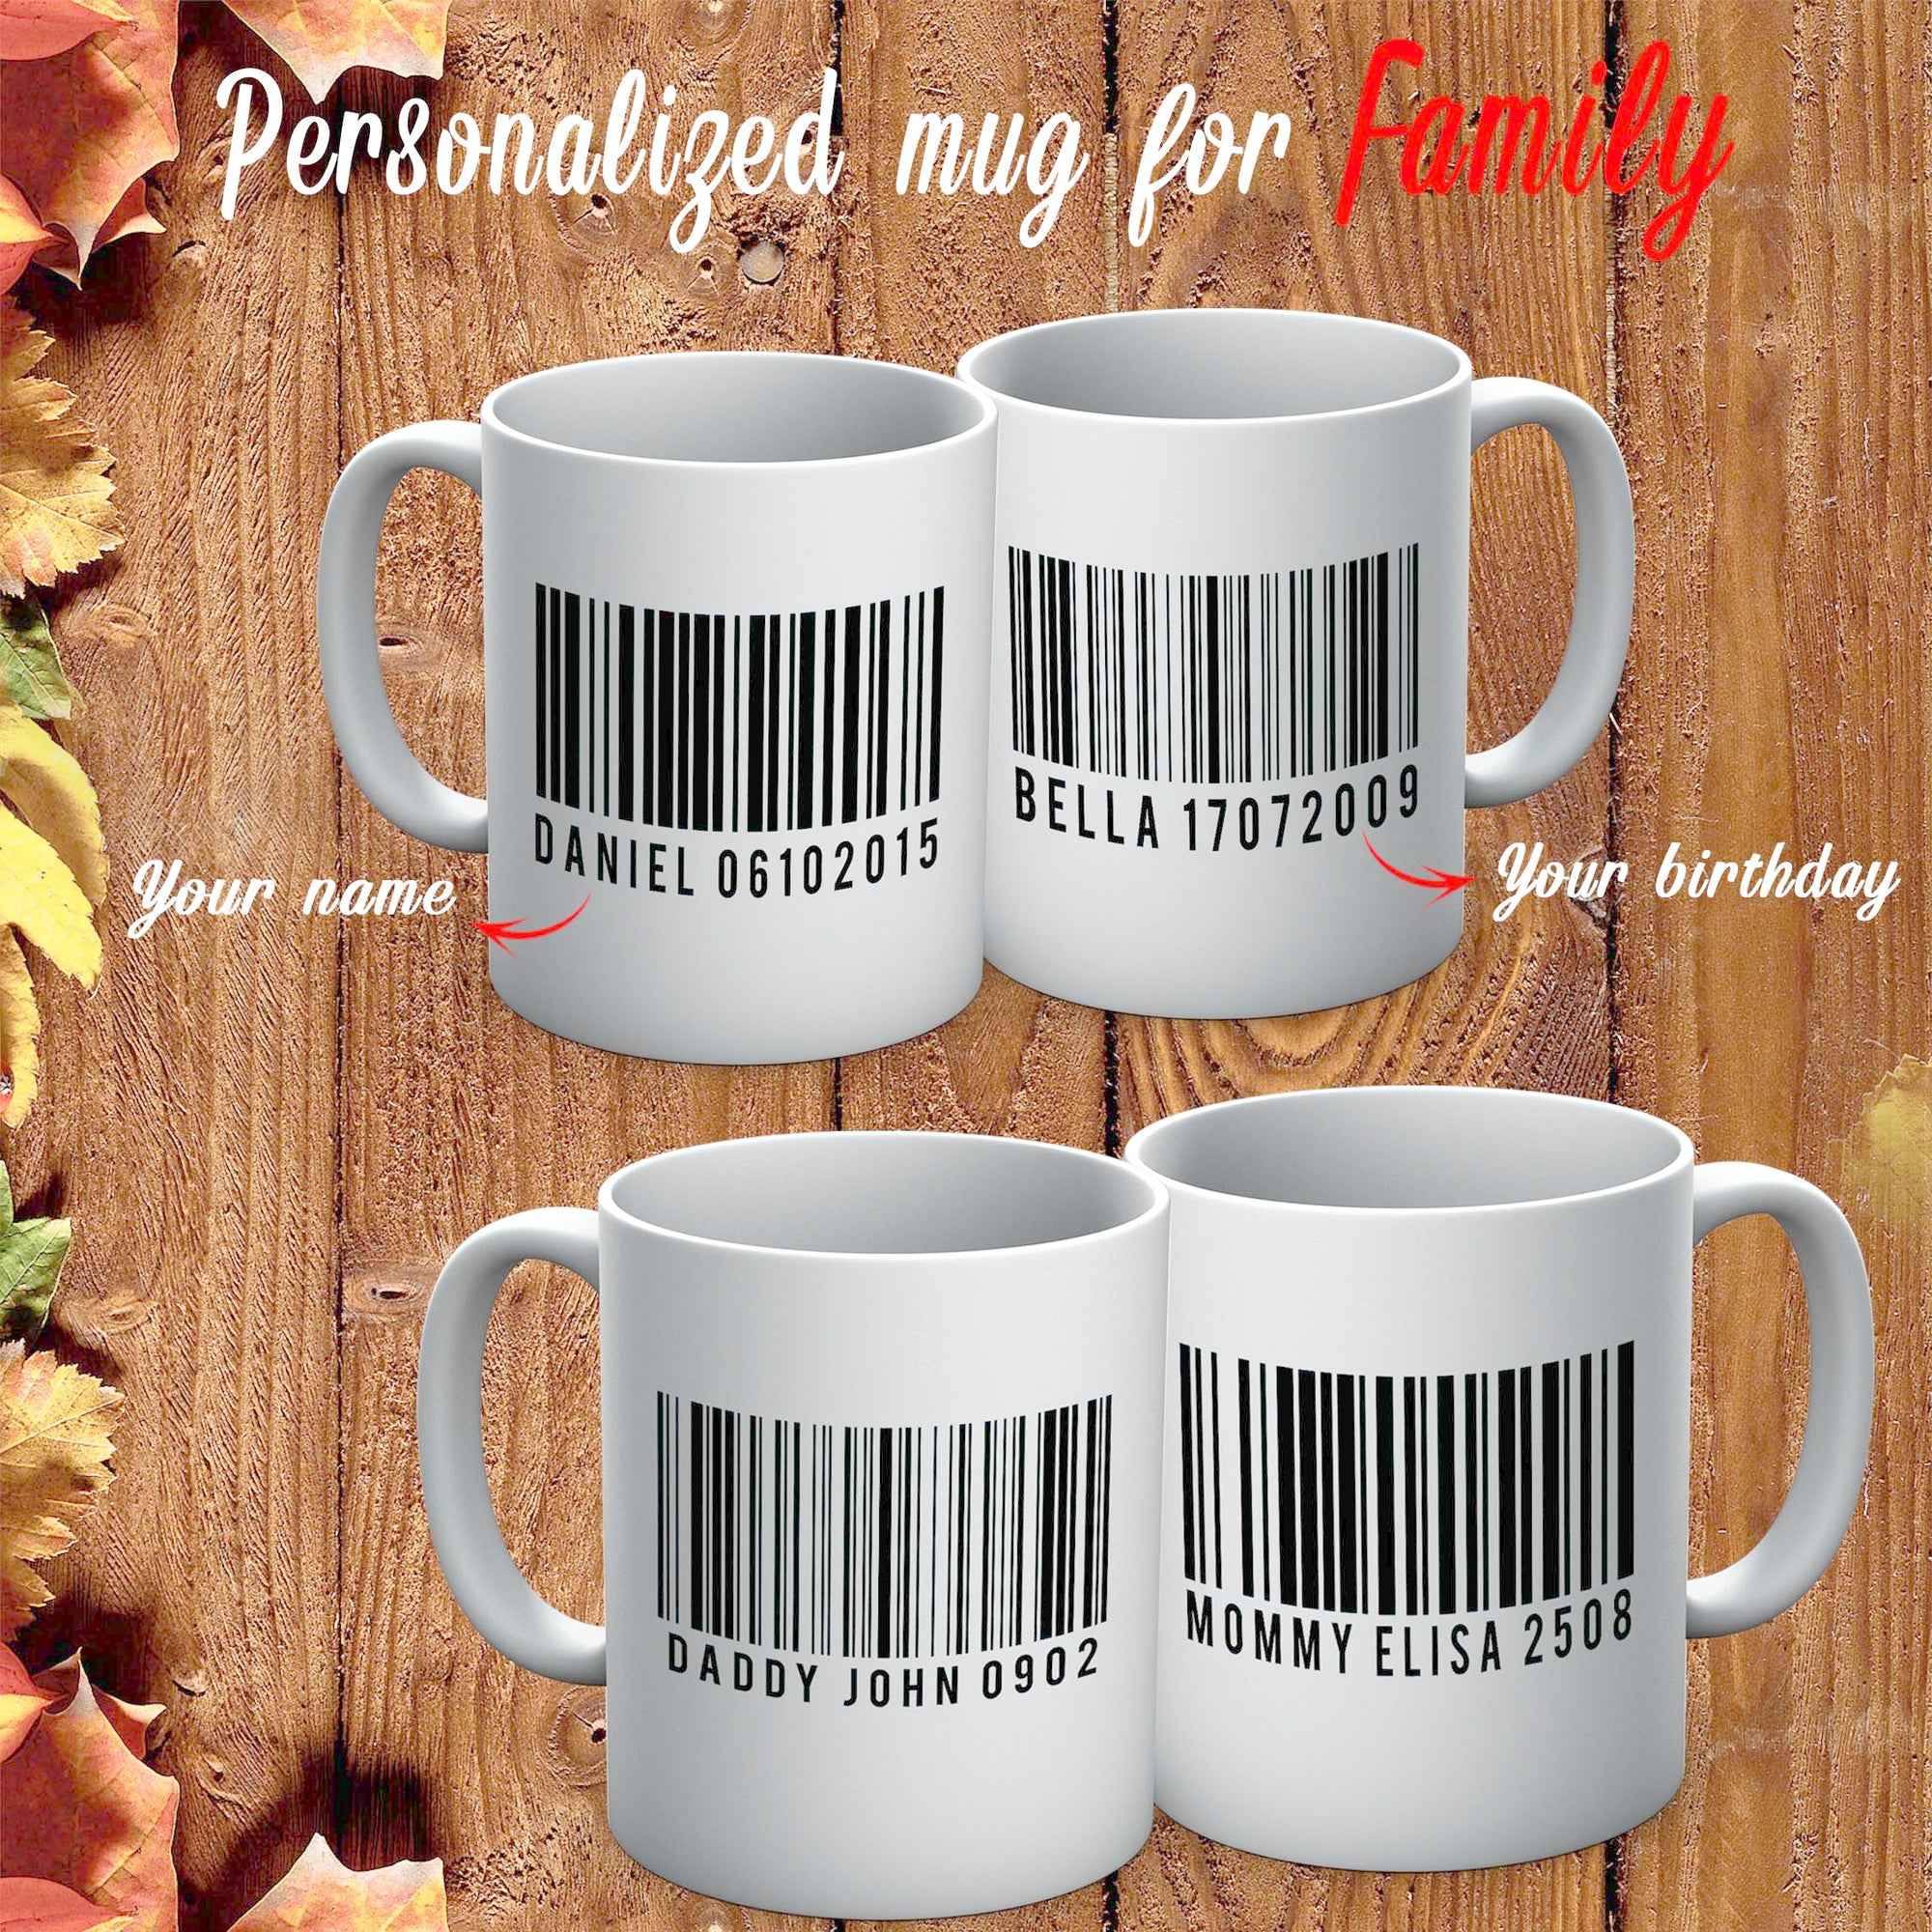 PERSONALIZED MUG - ADD YOUR KIDS NAME BARCODE ON YOUR MUG 2